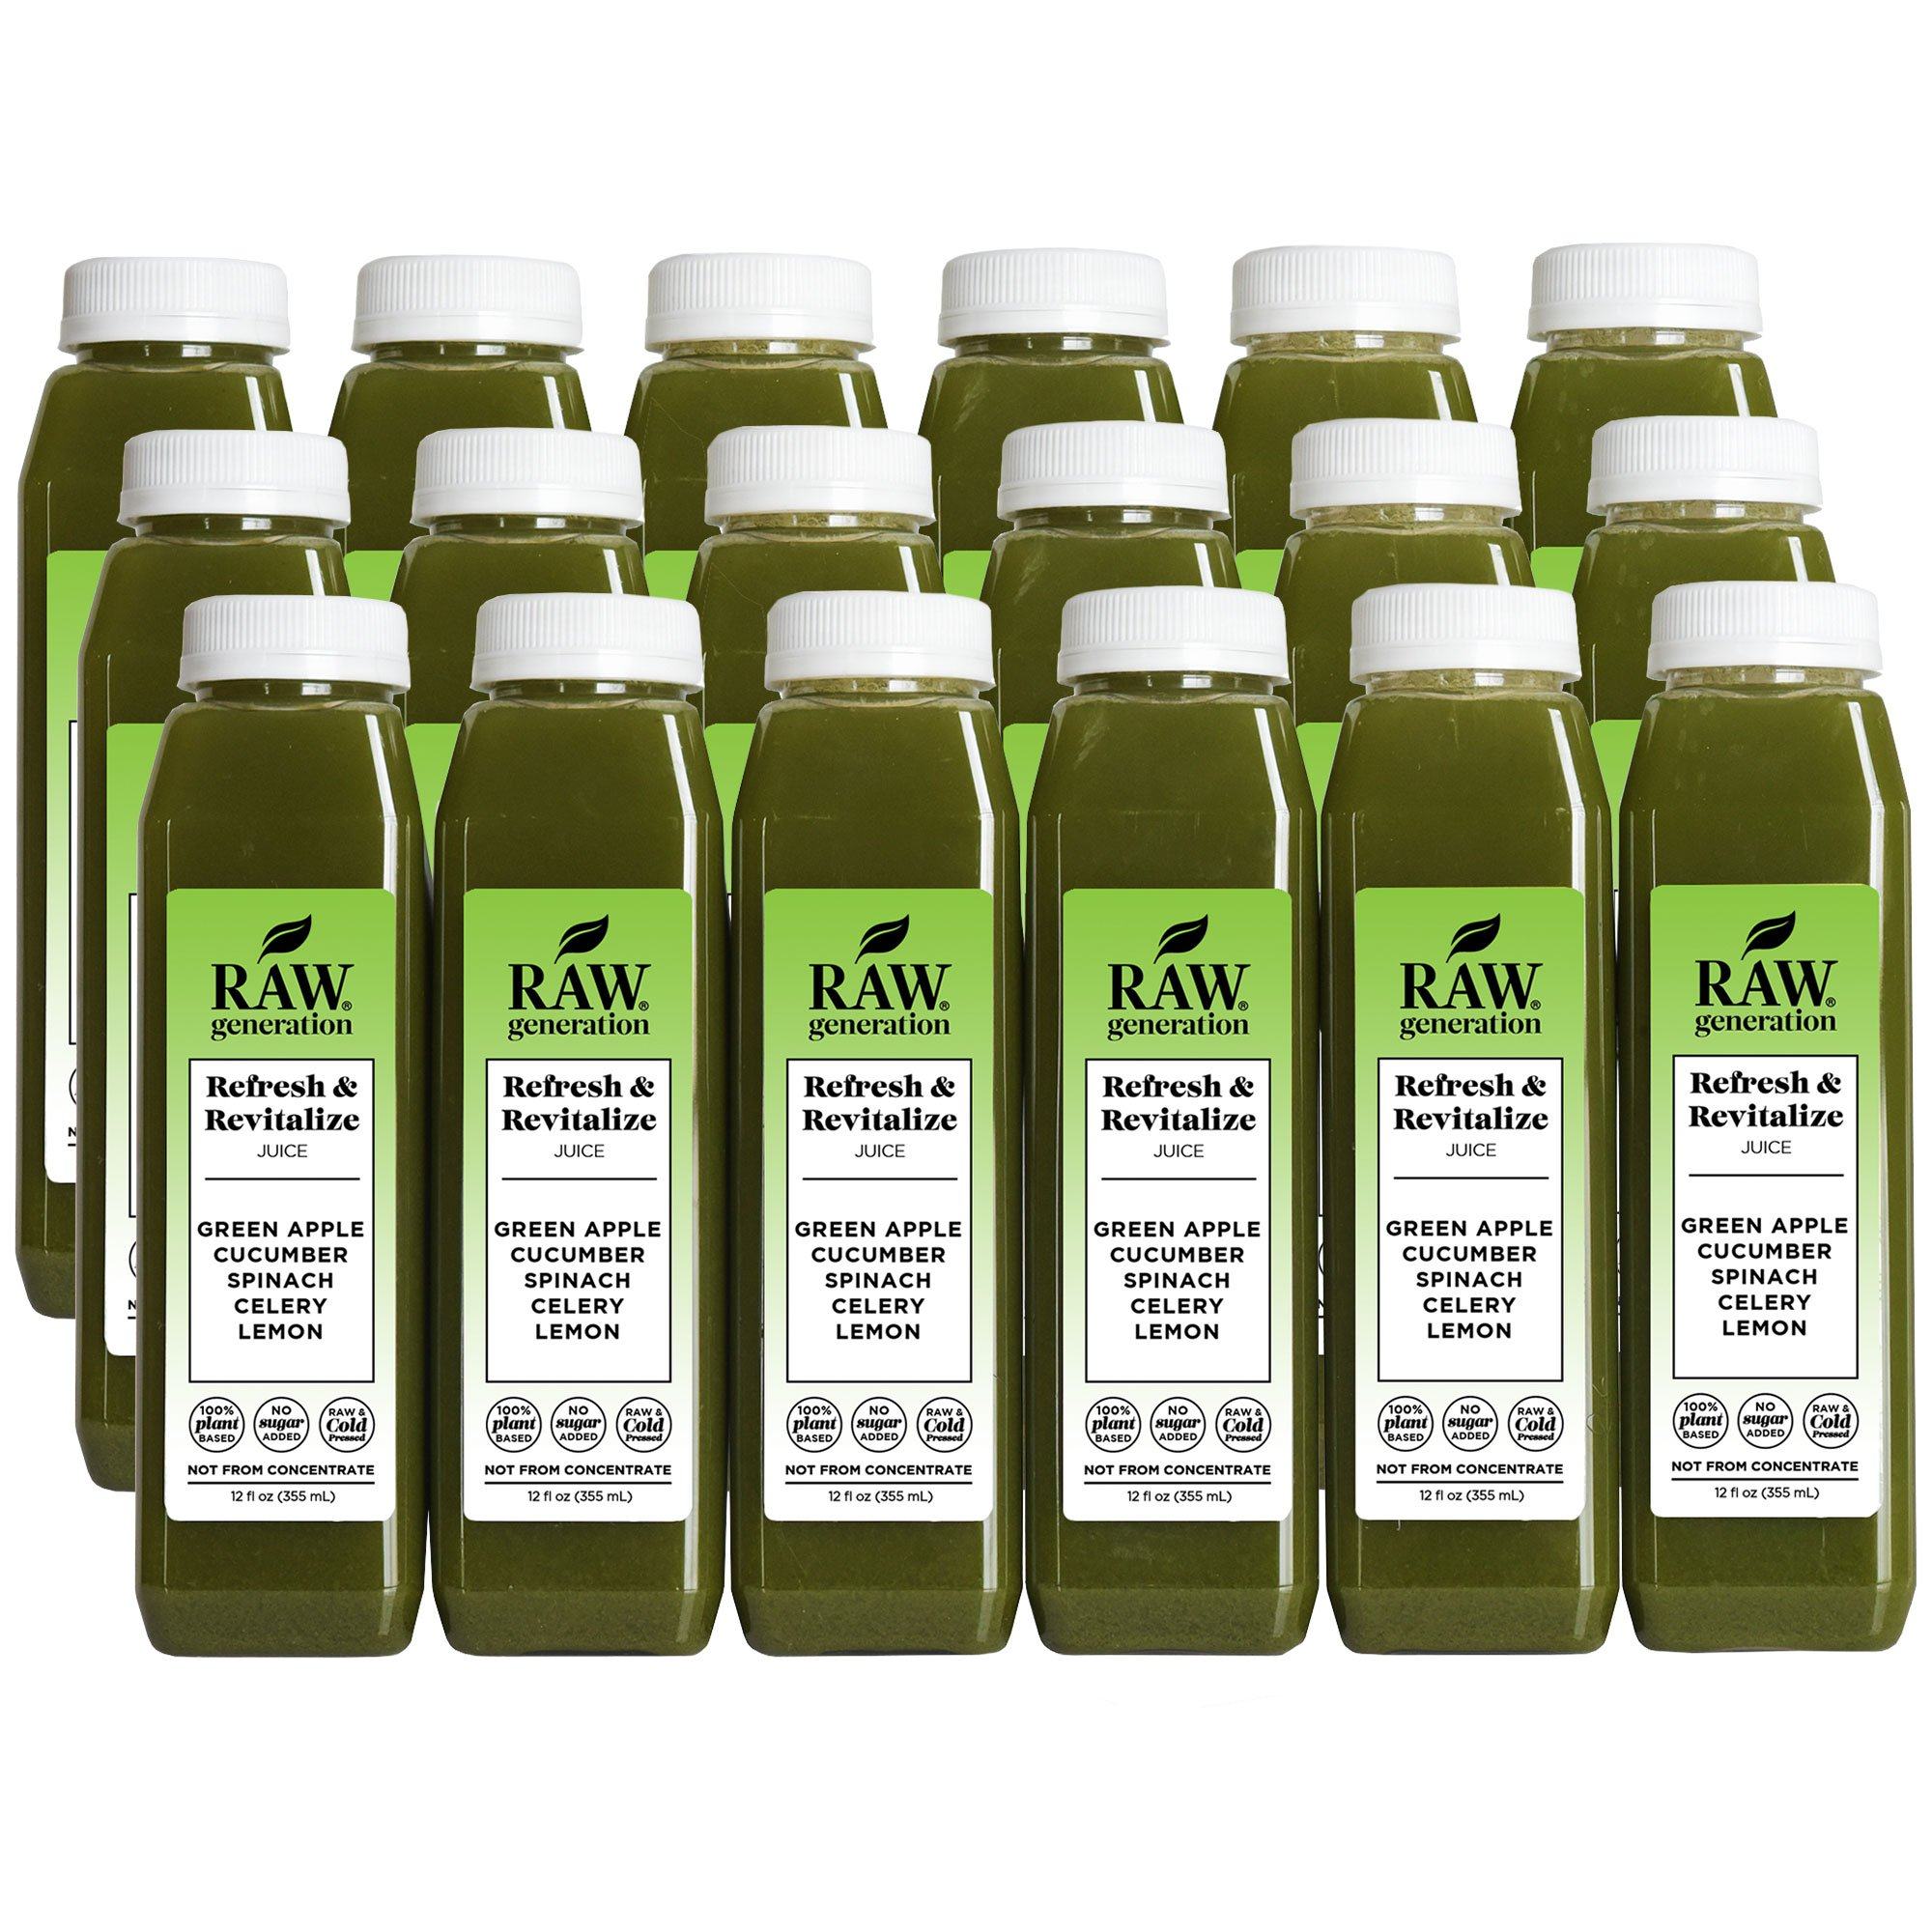 Raw Generation Refresh & Revitalize Juice - Healthiest Way to Lose Weight & Stay Strong - Plant-Based Protein Smoothies & Juices - FREE Shipping (18)